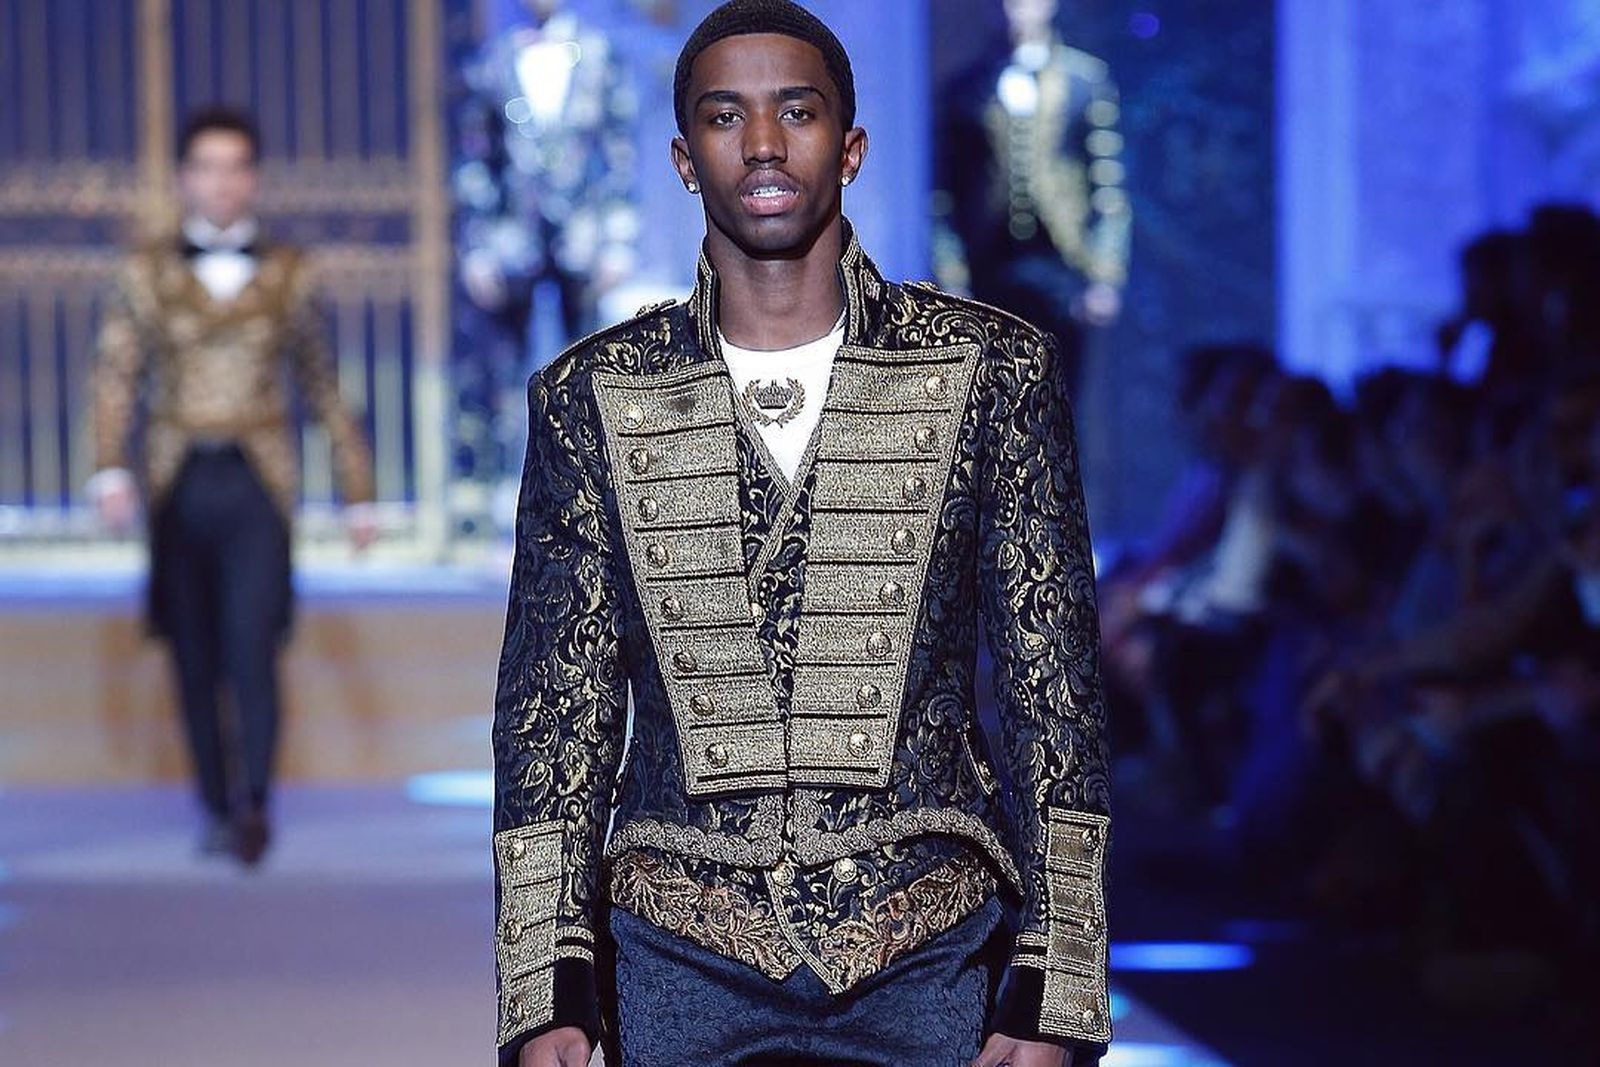 christian king combs dolce gabbana fw18 show Christian Combs dolce & gabbana runway